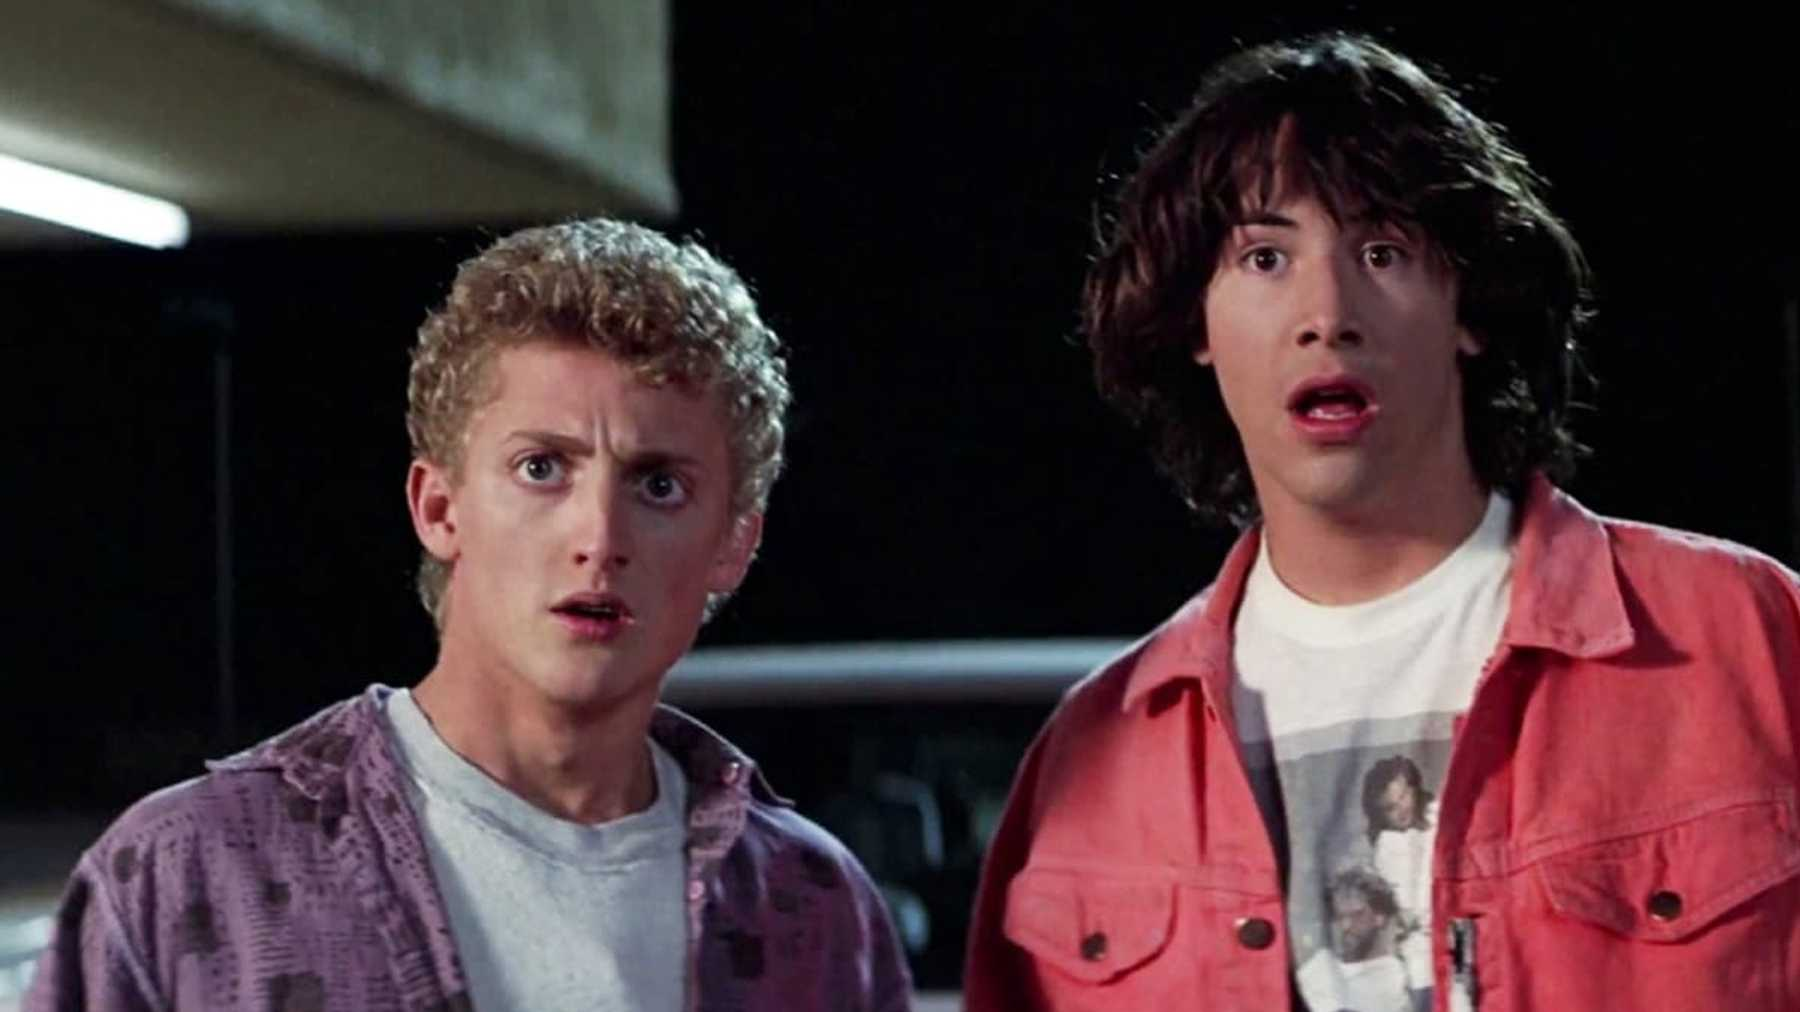 Bill & Ted Sequel Is Going To Be Really Good, Promises Producer Steven Soderbergh